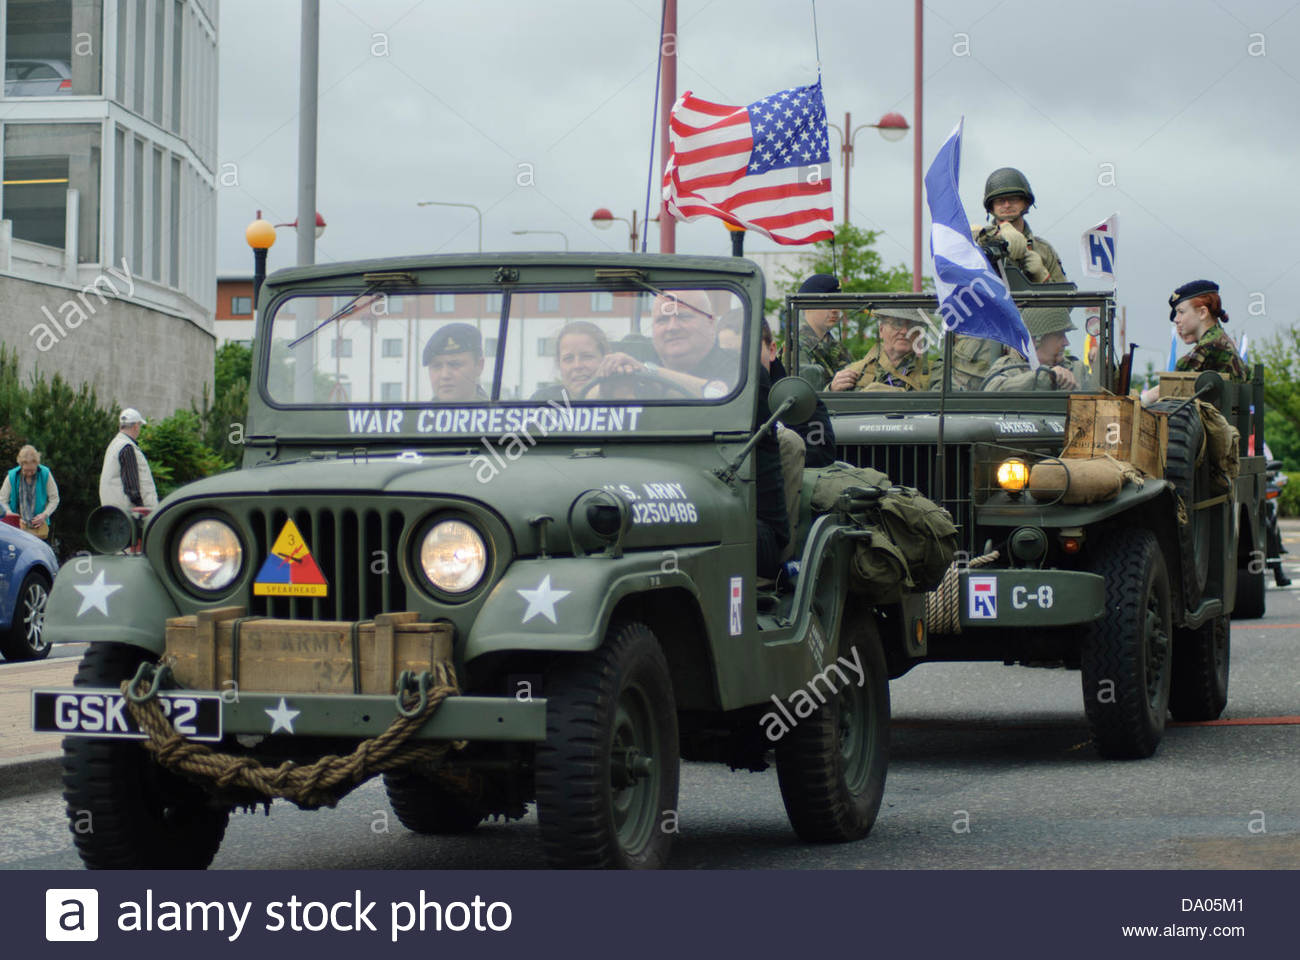 Livingston, UK. 29th June 2013. WW2 re-enactment vehicles taking part in Armed Forces day. Livingston. Saturday - Stock Image